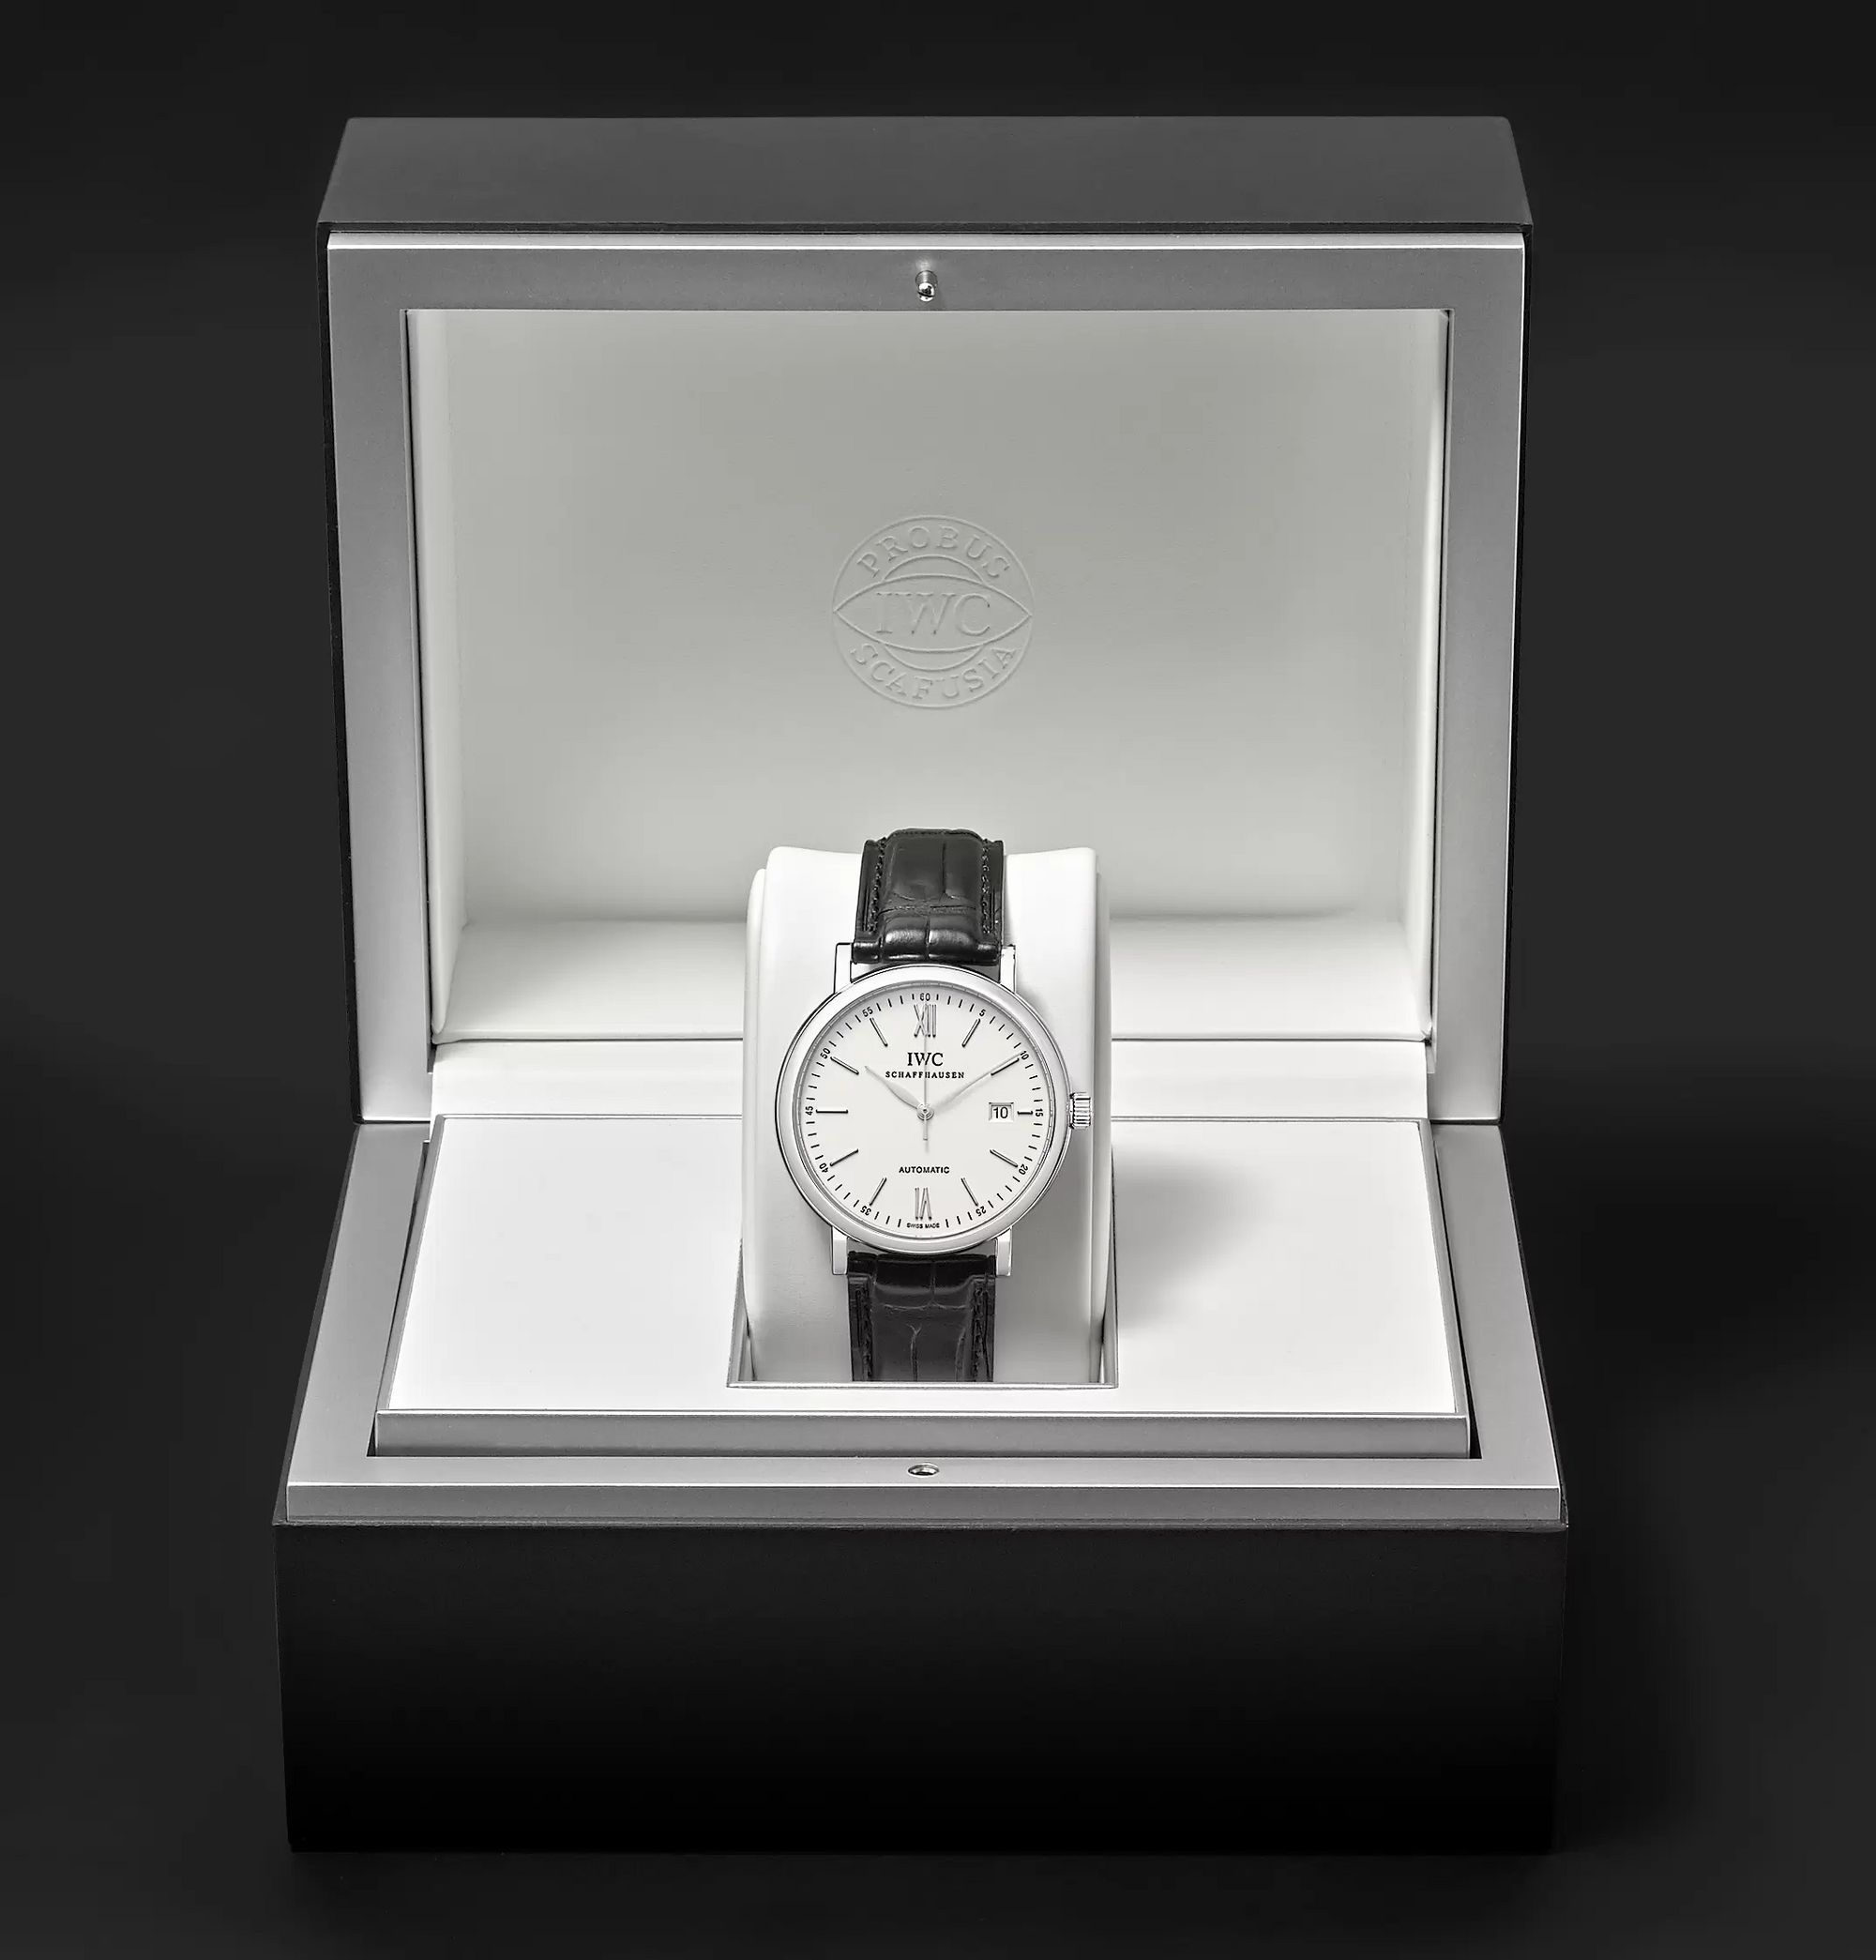 IWC SCHAFFHAUSEN Portofino Automatic 40mm Stainless Steel and Alligator Watch, Ref. No. IW356501